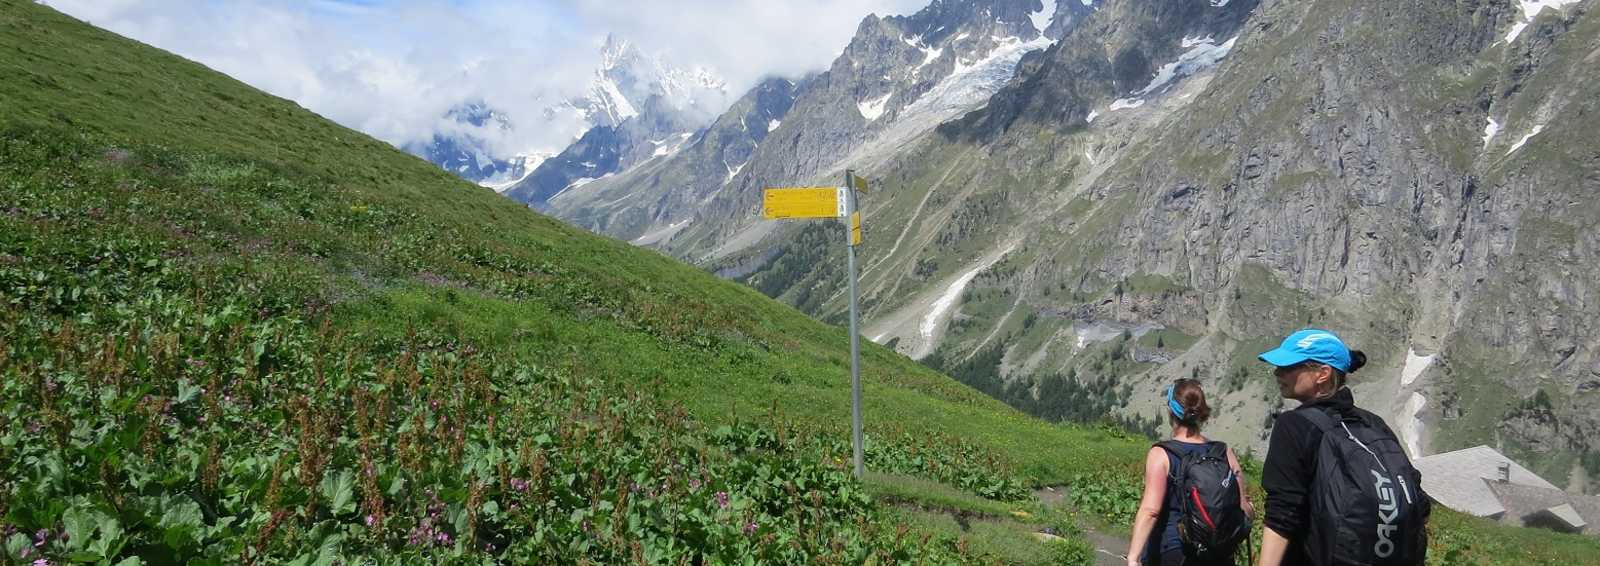 Signposts on the Tour de Mont Blanc, France